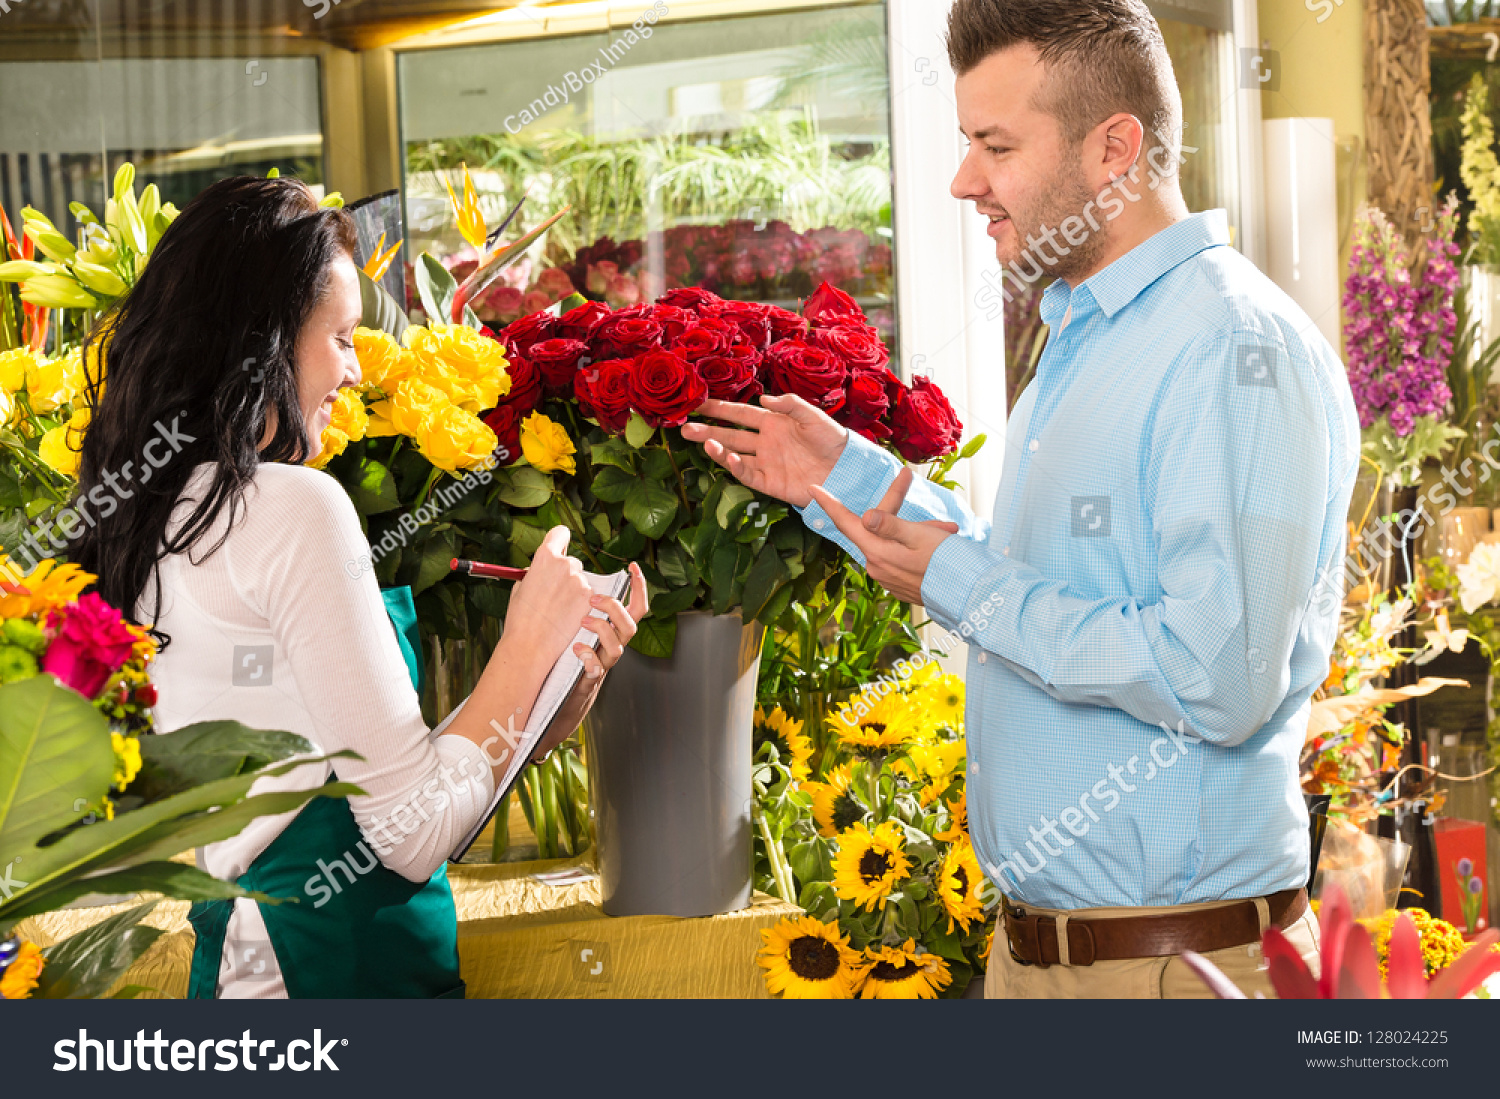 Man Customer Ordering Flowers Bouquet Flower Stock Photo Edit Now